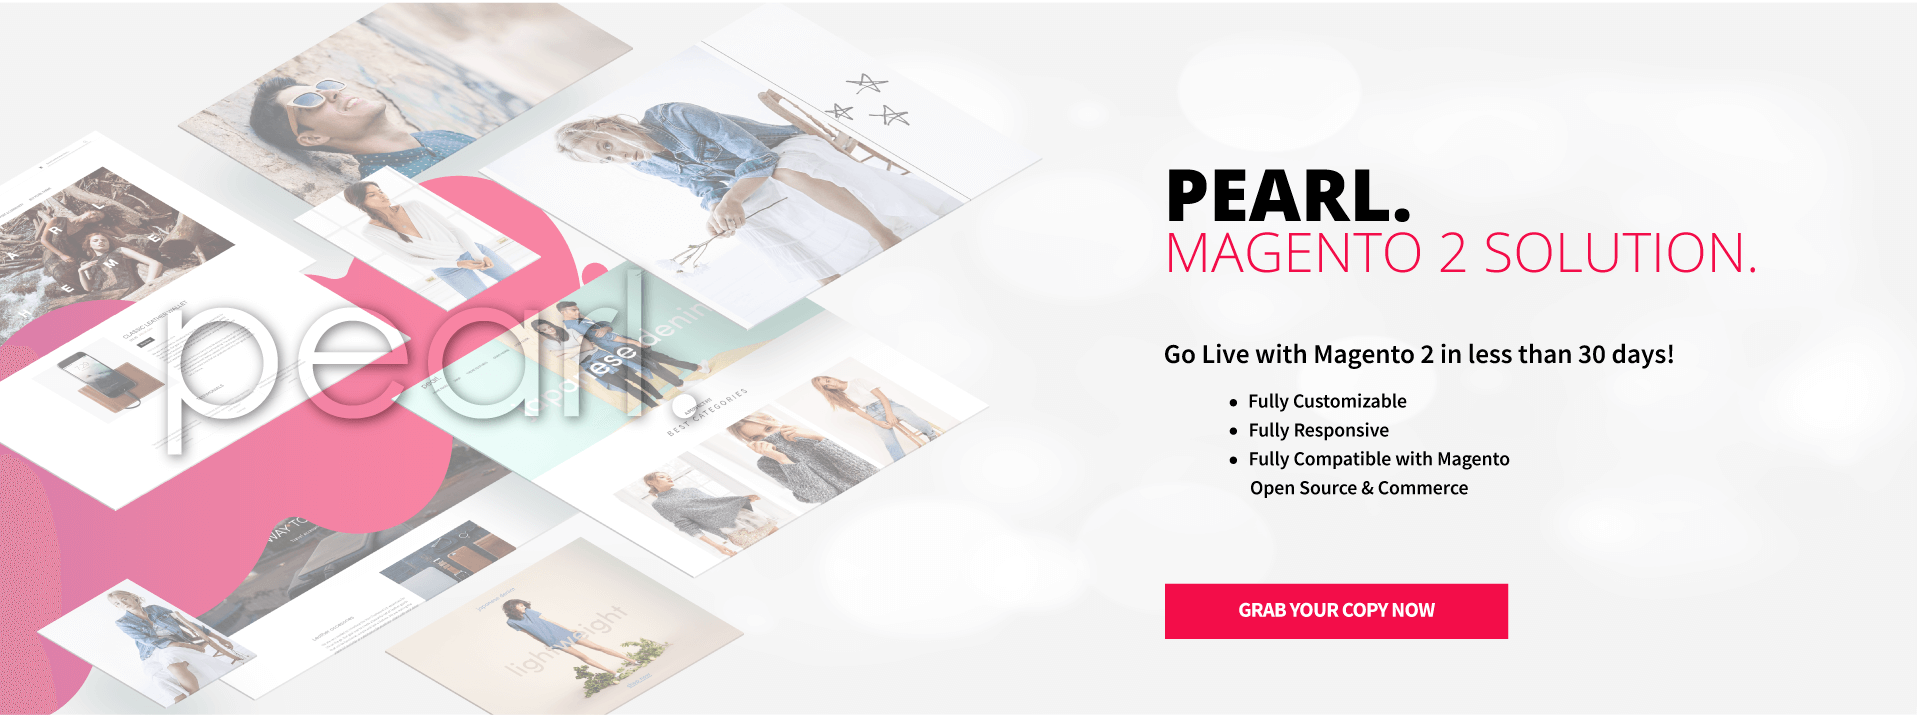 How to Go Live with Magento 2 in less than 30 days using the Pearl